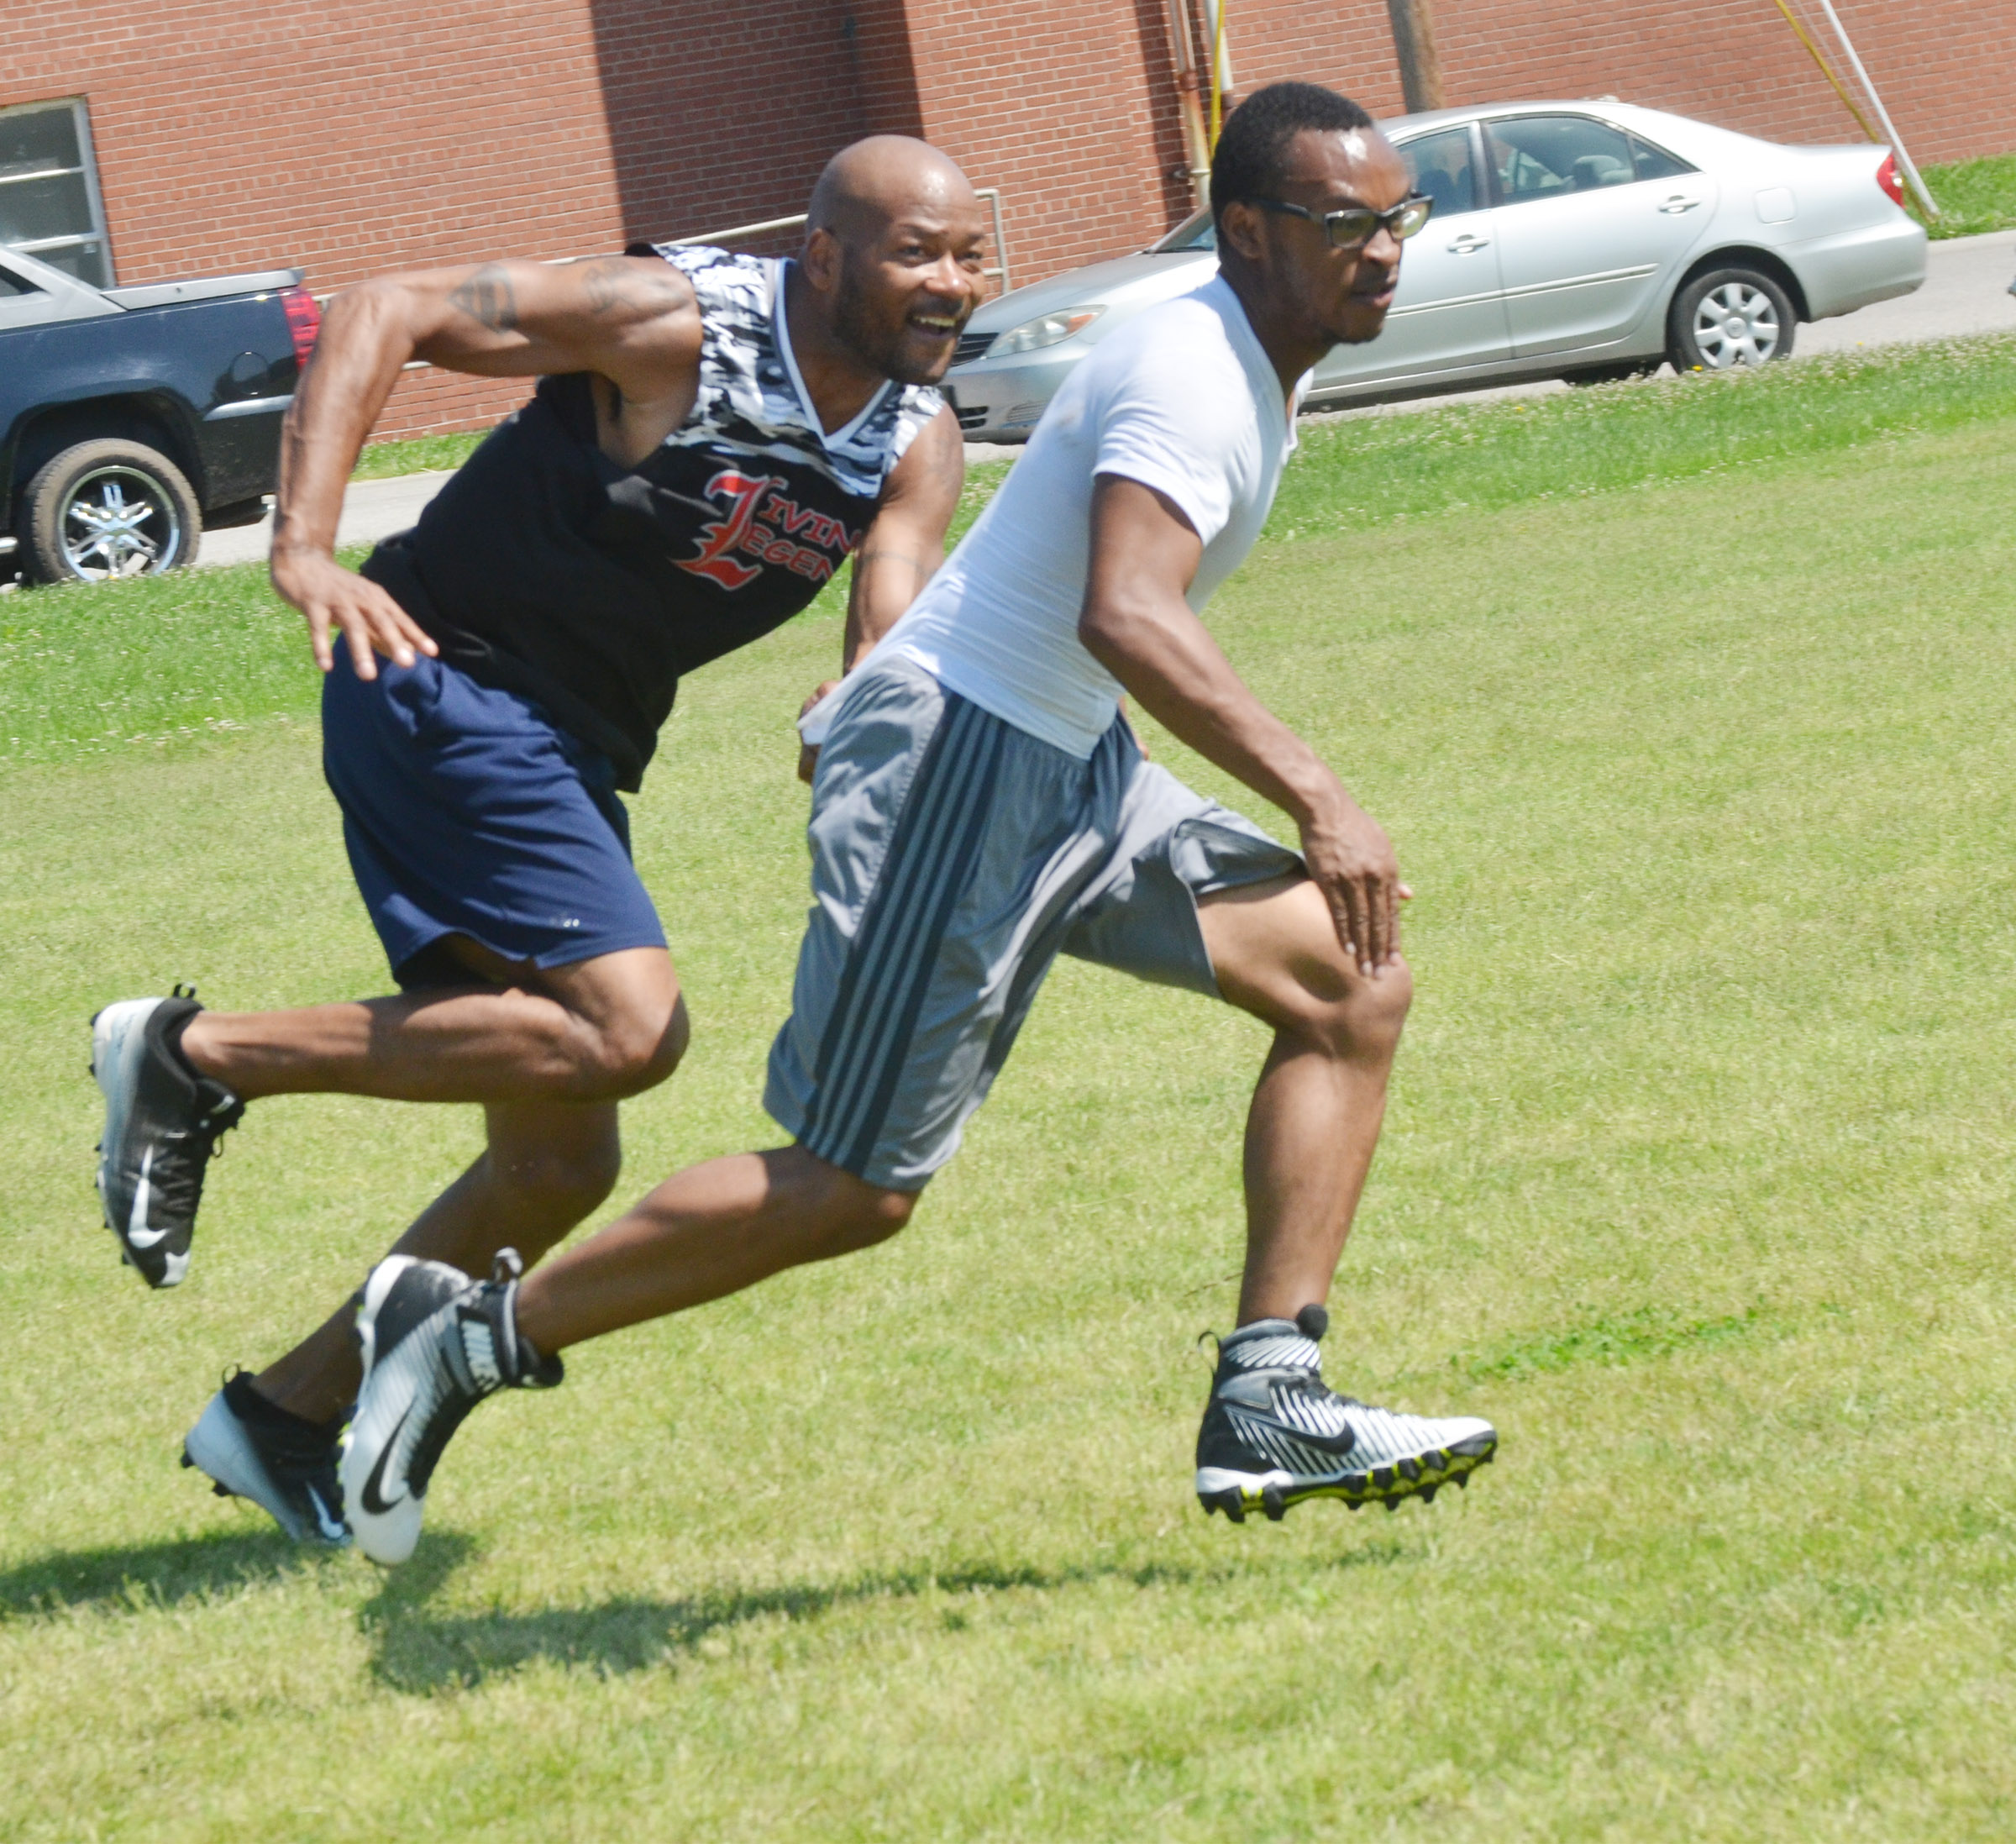 Former NFL player Tony Driver runs to tackle Daesean Vancleave.